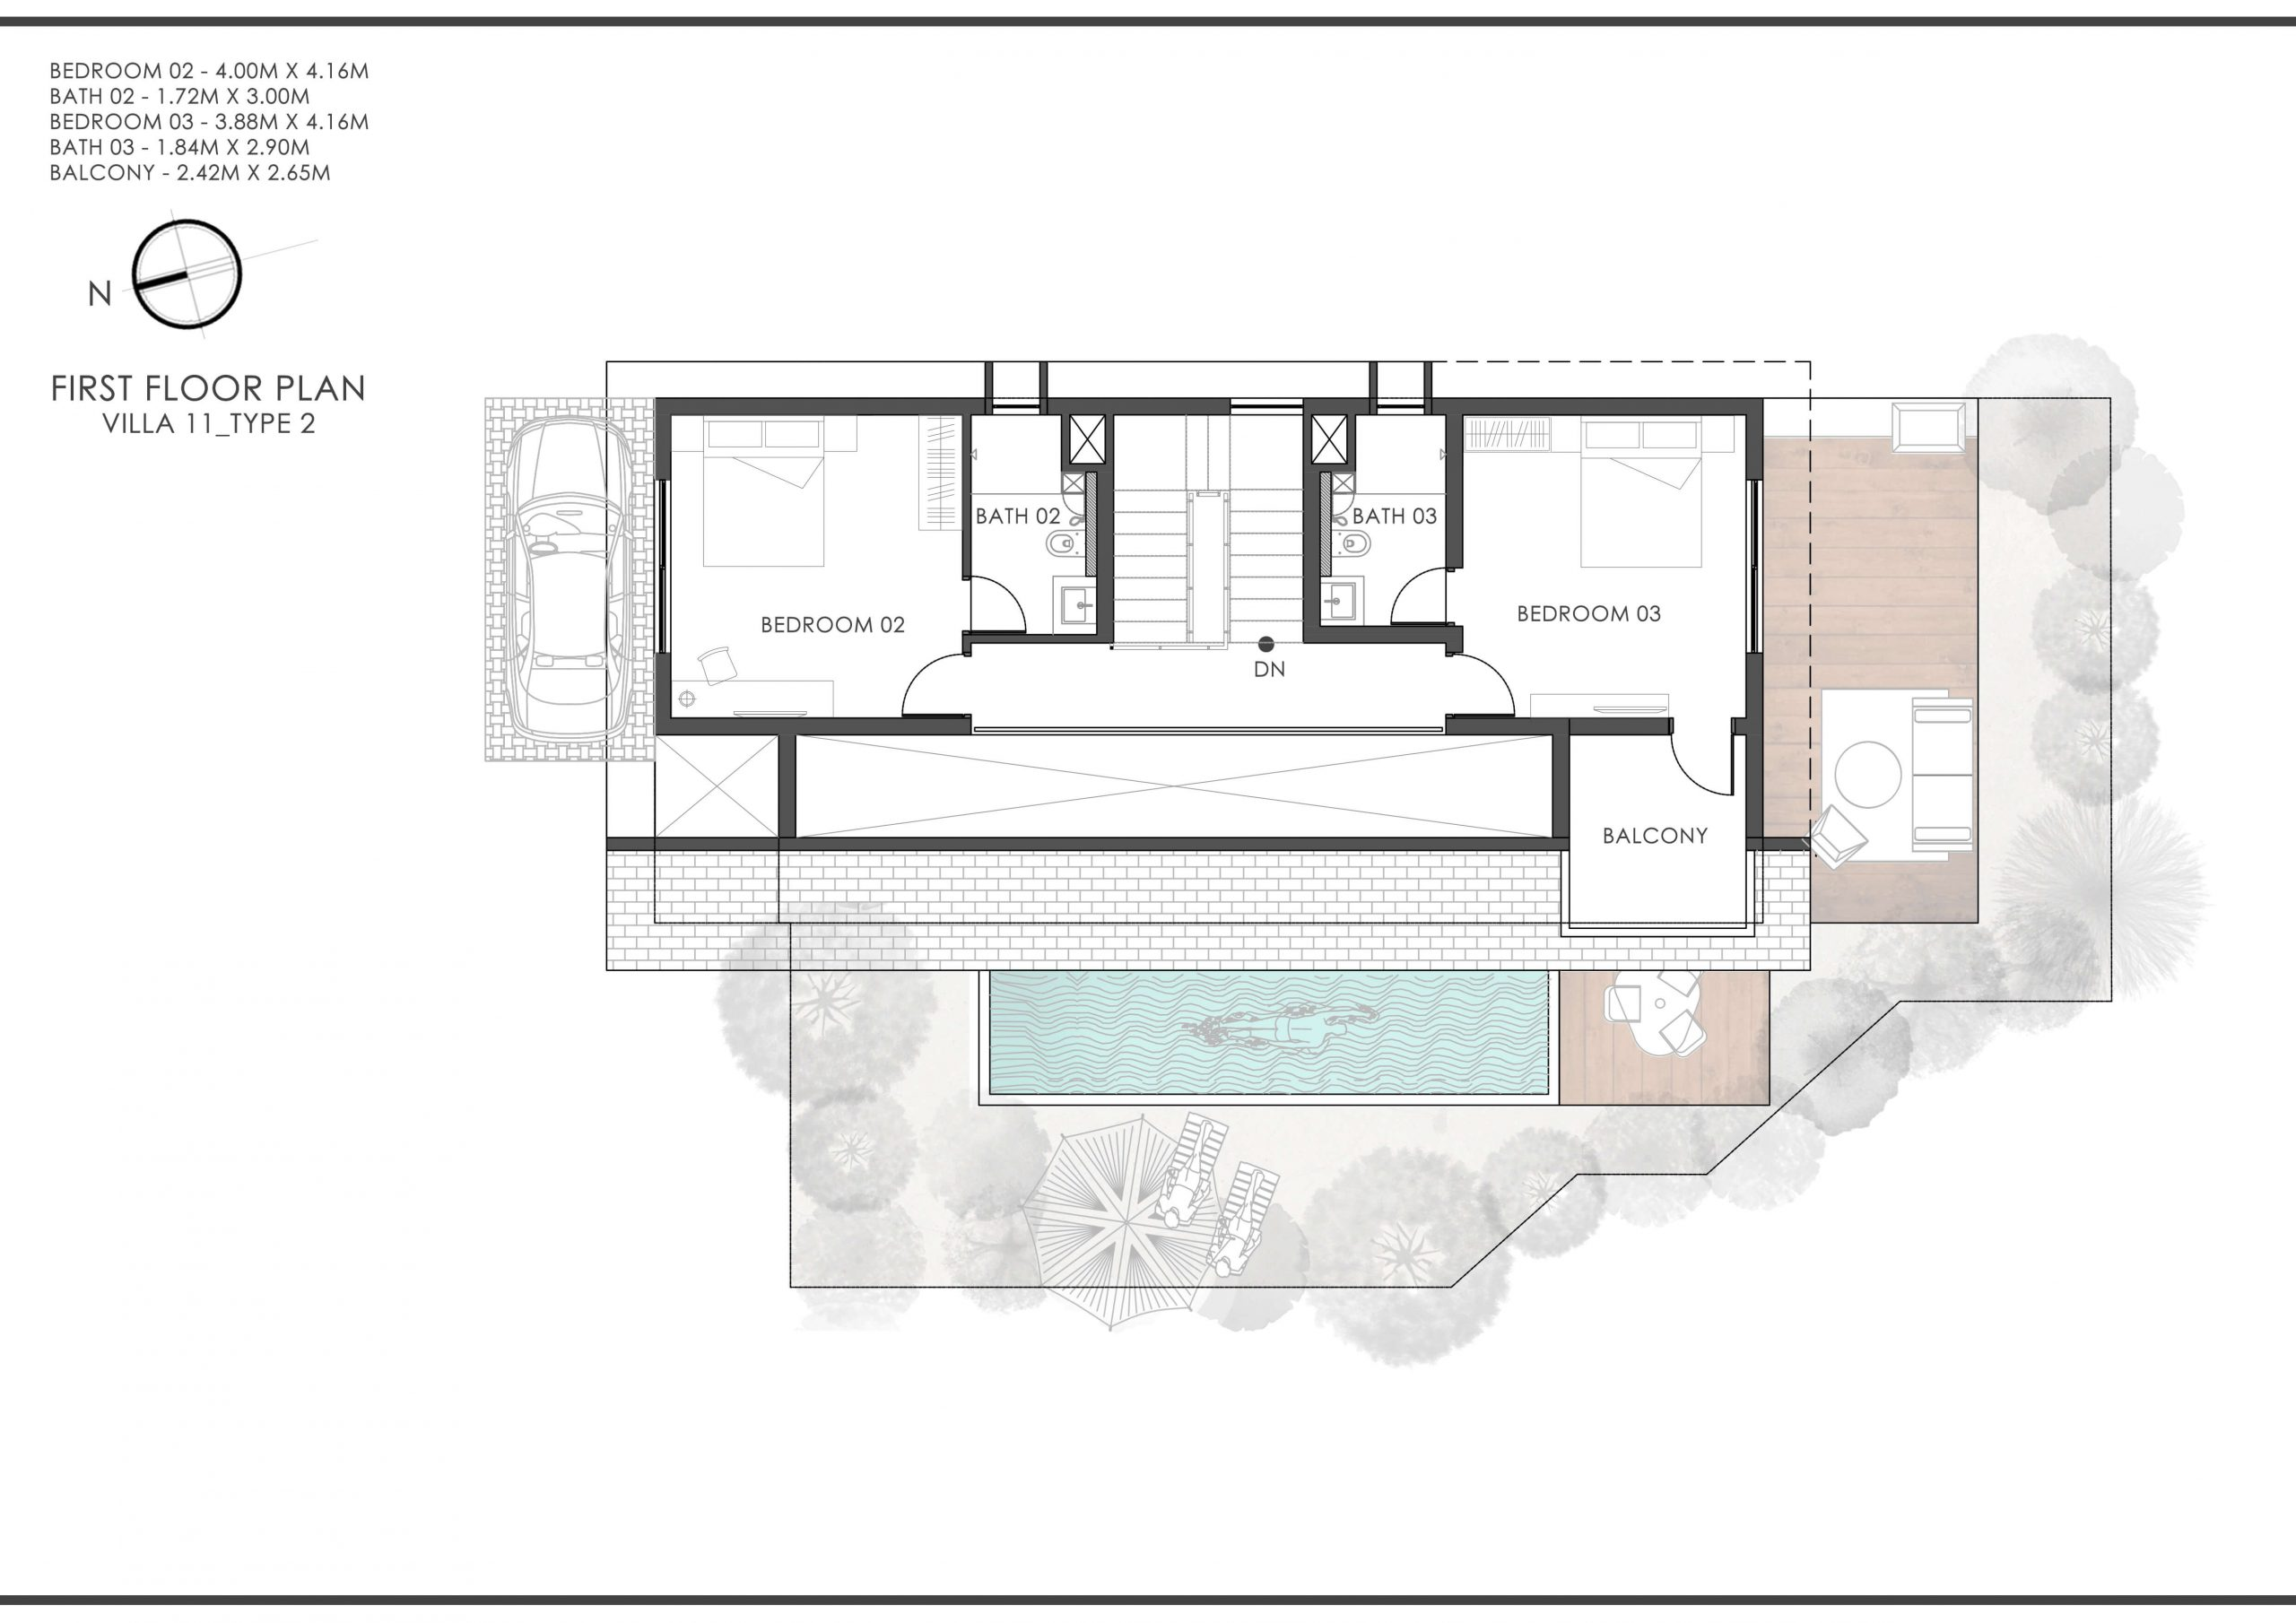 villa-11_first-floor-plan-1